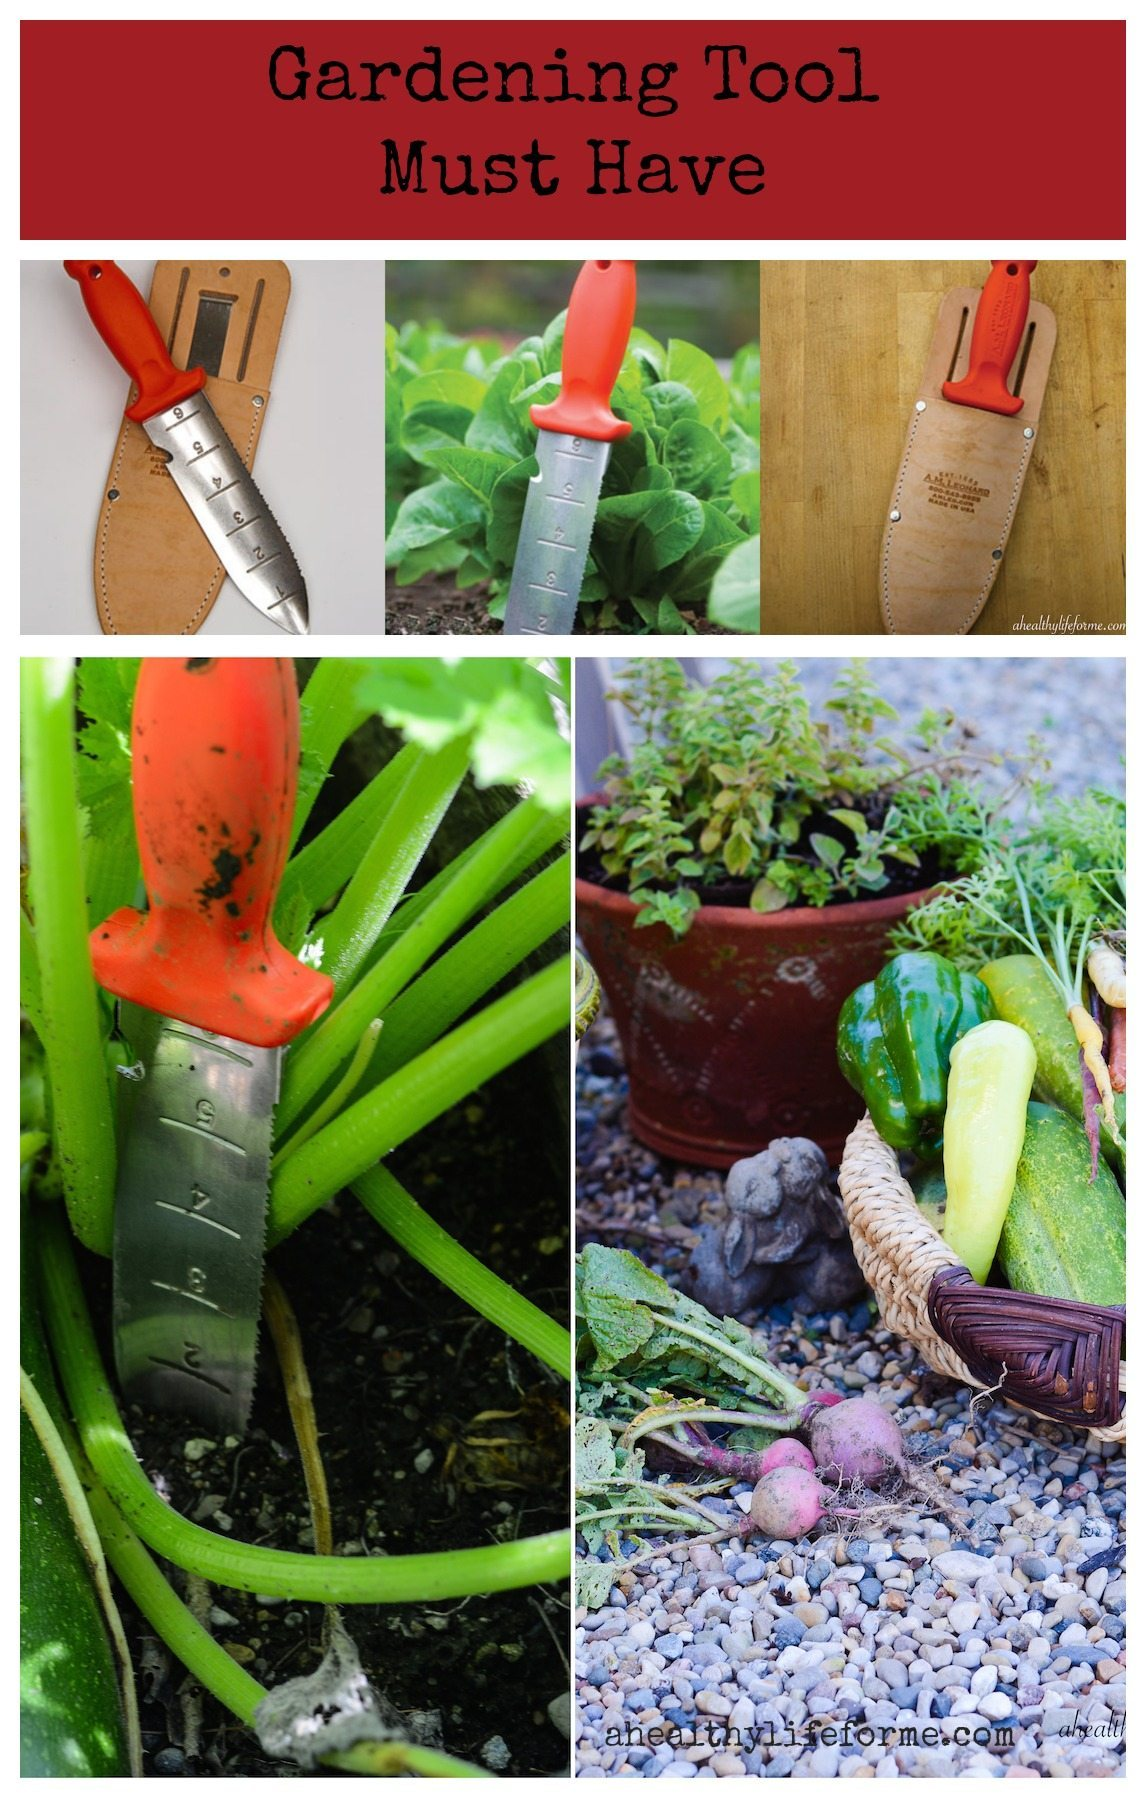 Gardening tool you will love a healthy life for me for Gardening tools must have